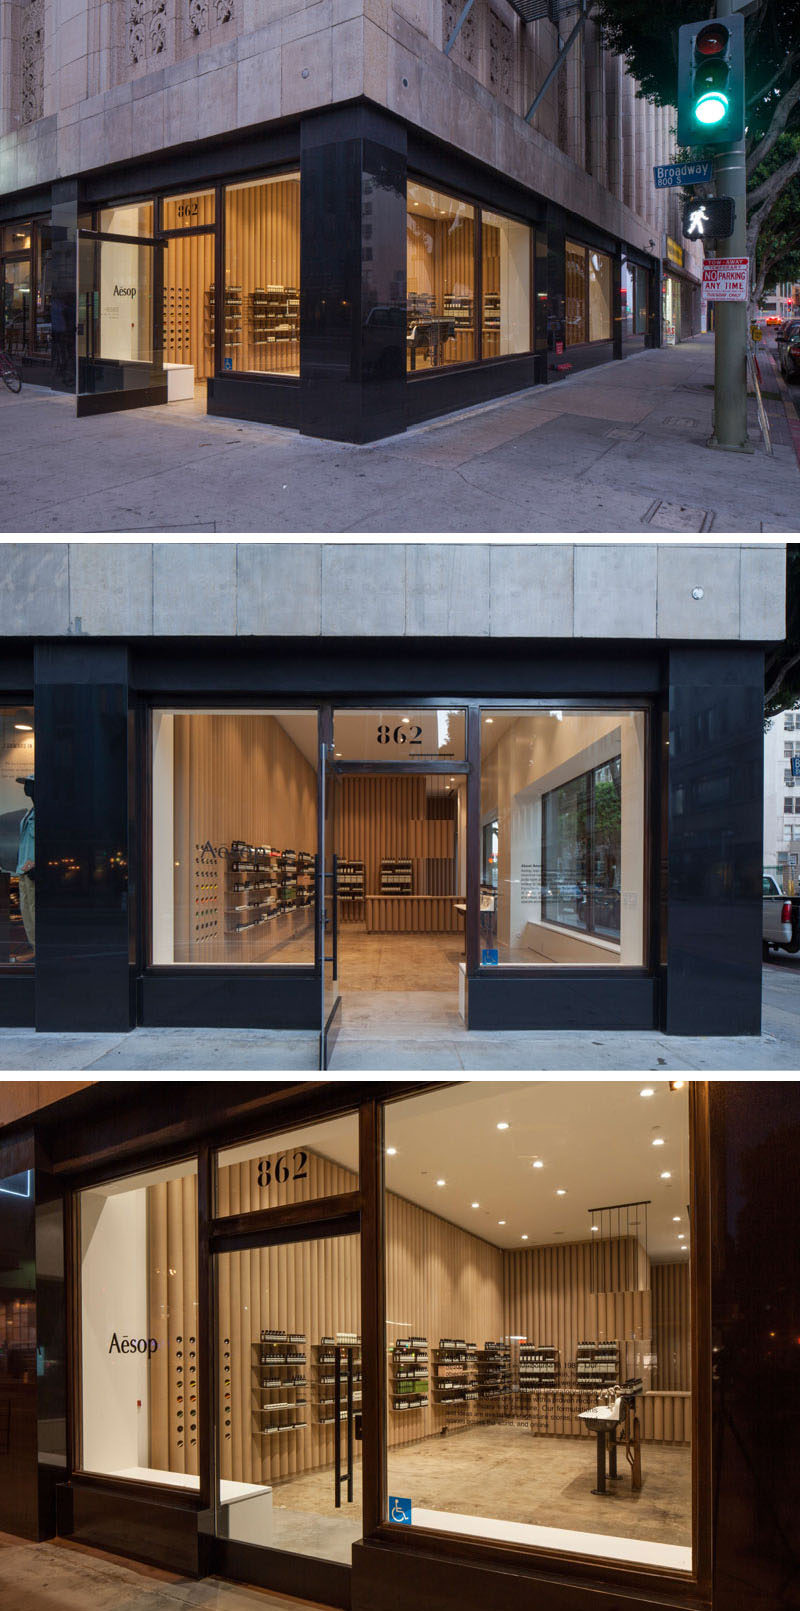 modern store interior design ideas brooks scarpa designed this aesop retail store in downtown - Retail Store Design Ideas